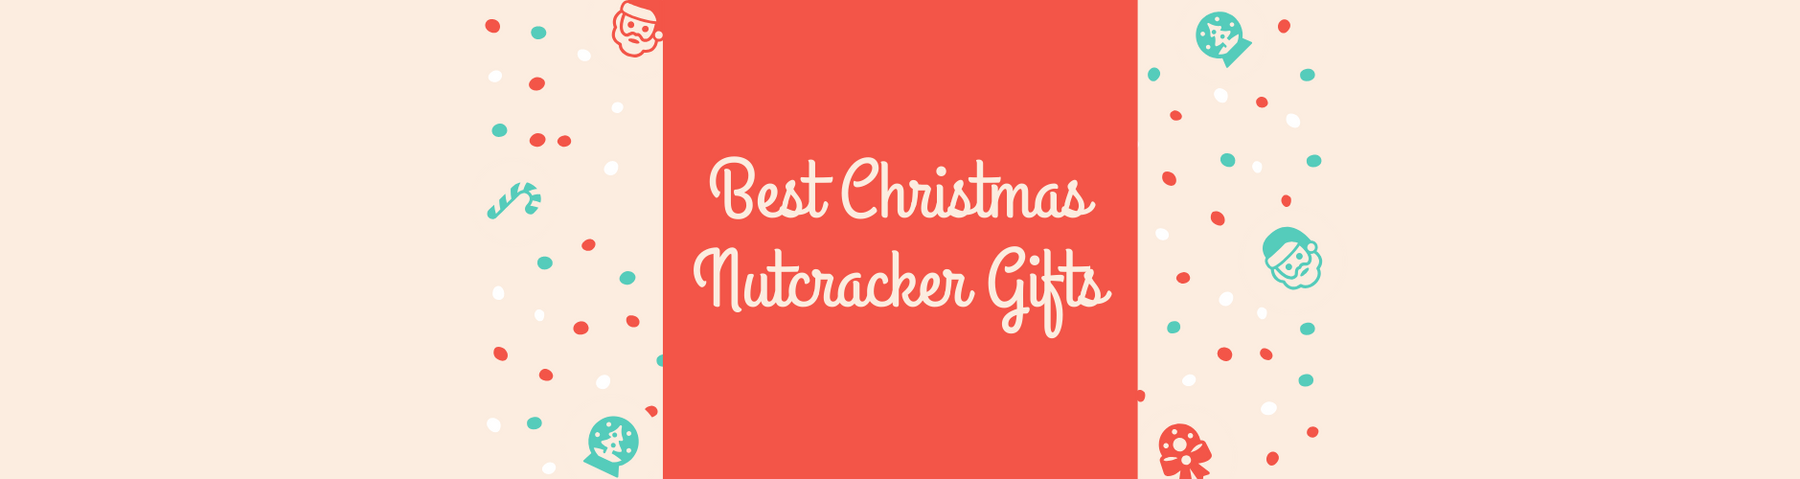 The Best Christmas Nutcracker Gifts